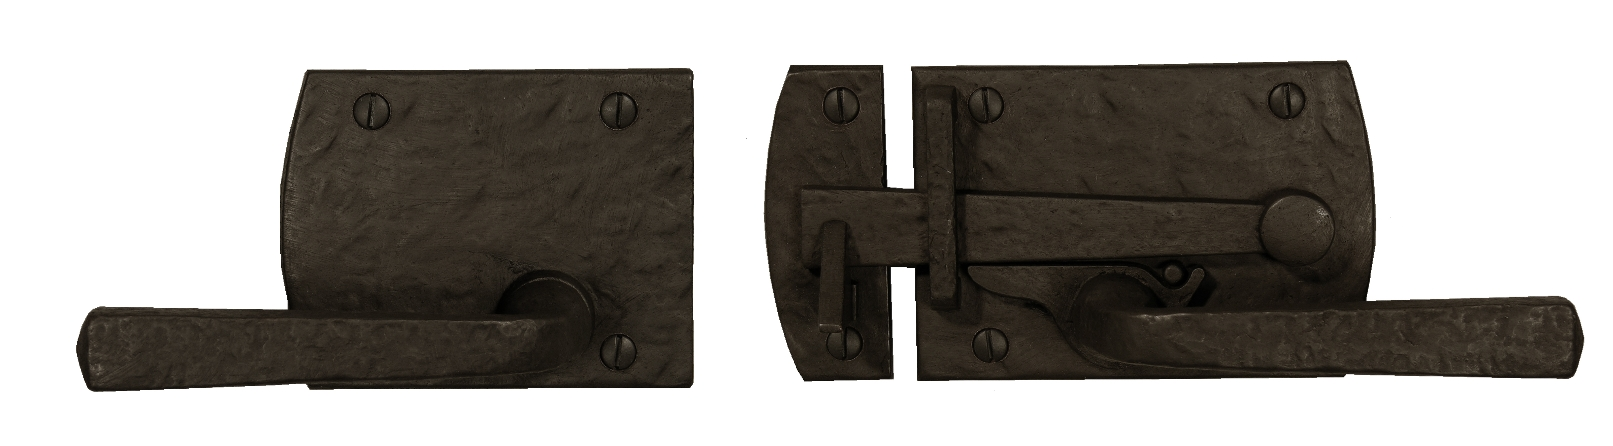 Cast Bronze Contemporary Lever Gate Latch with Square Handle